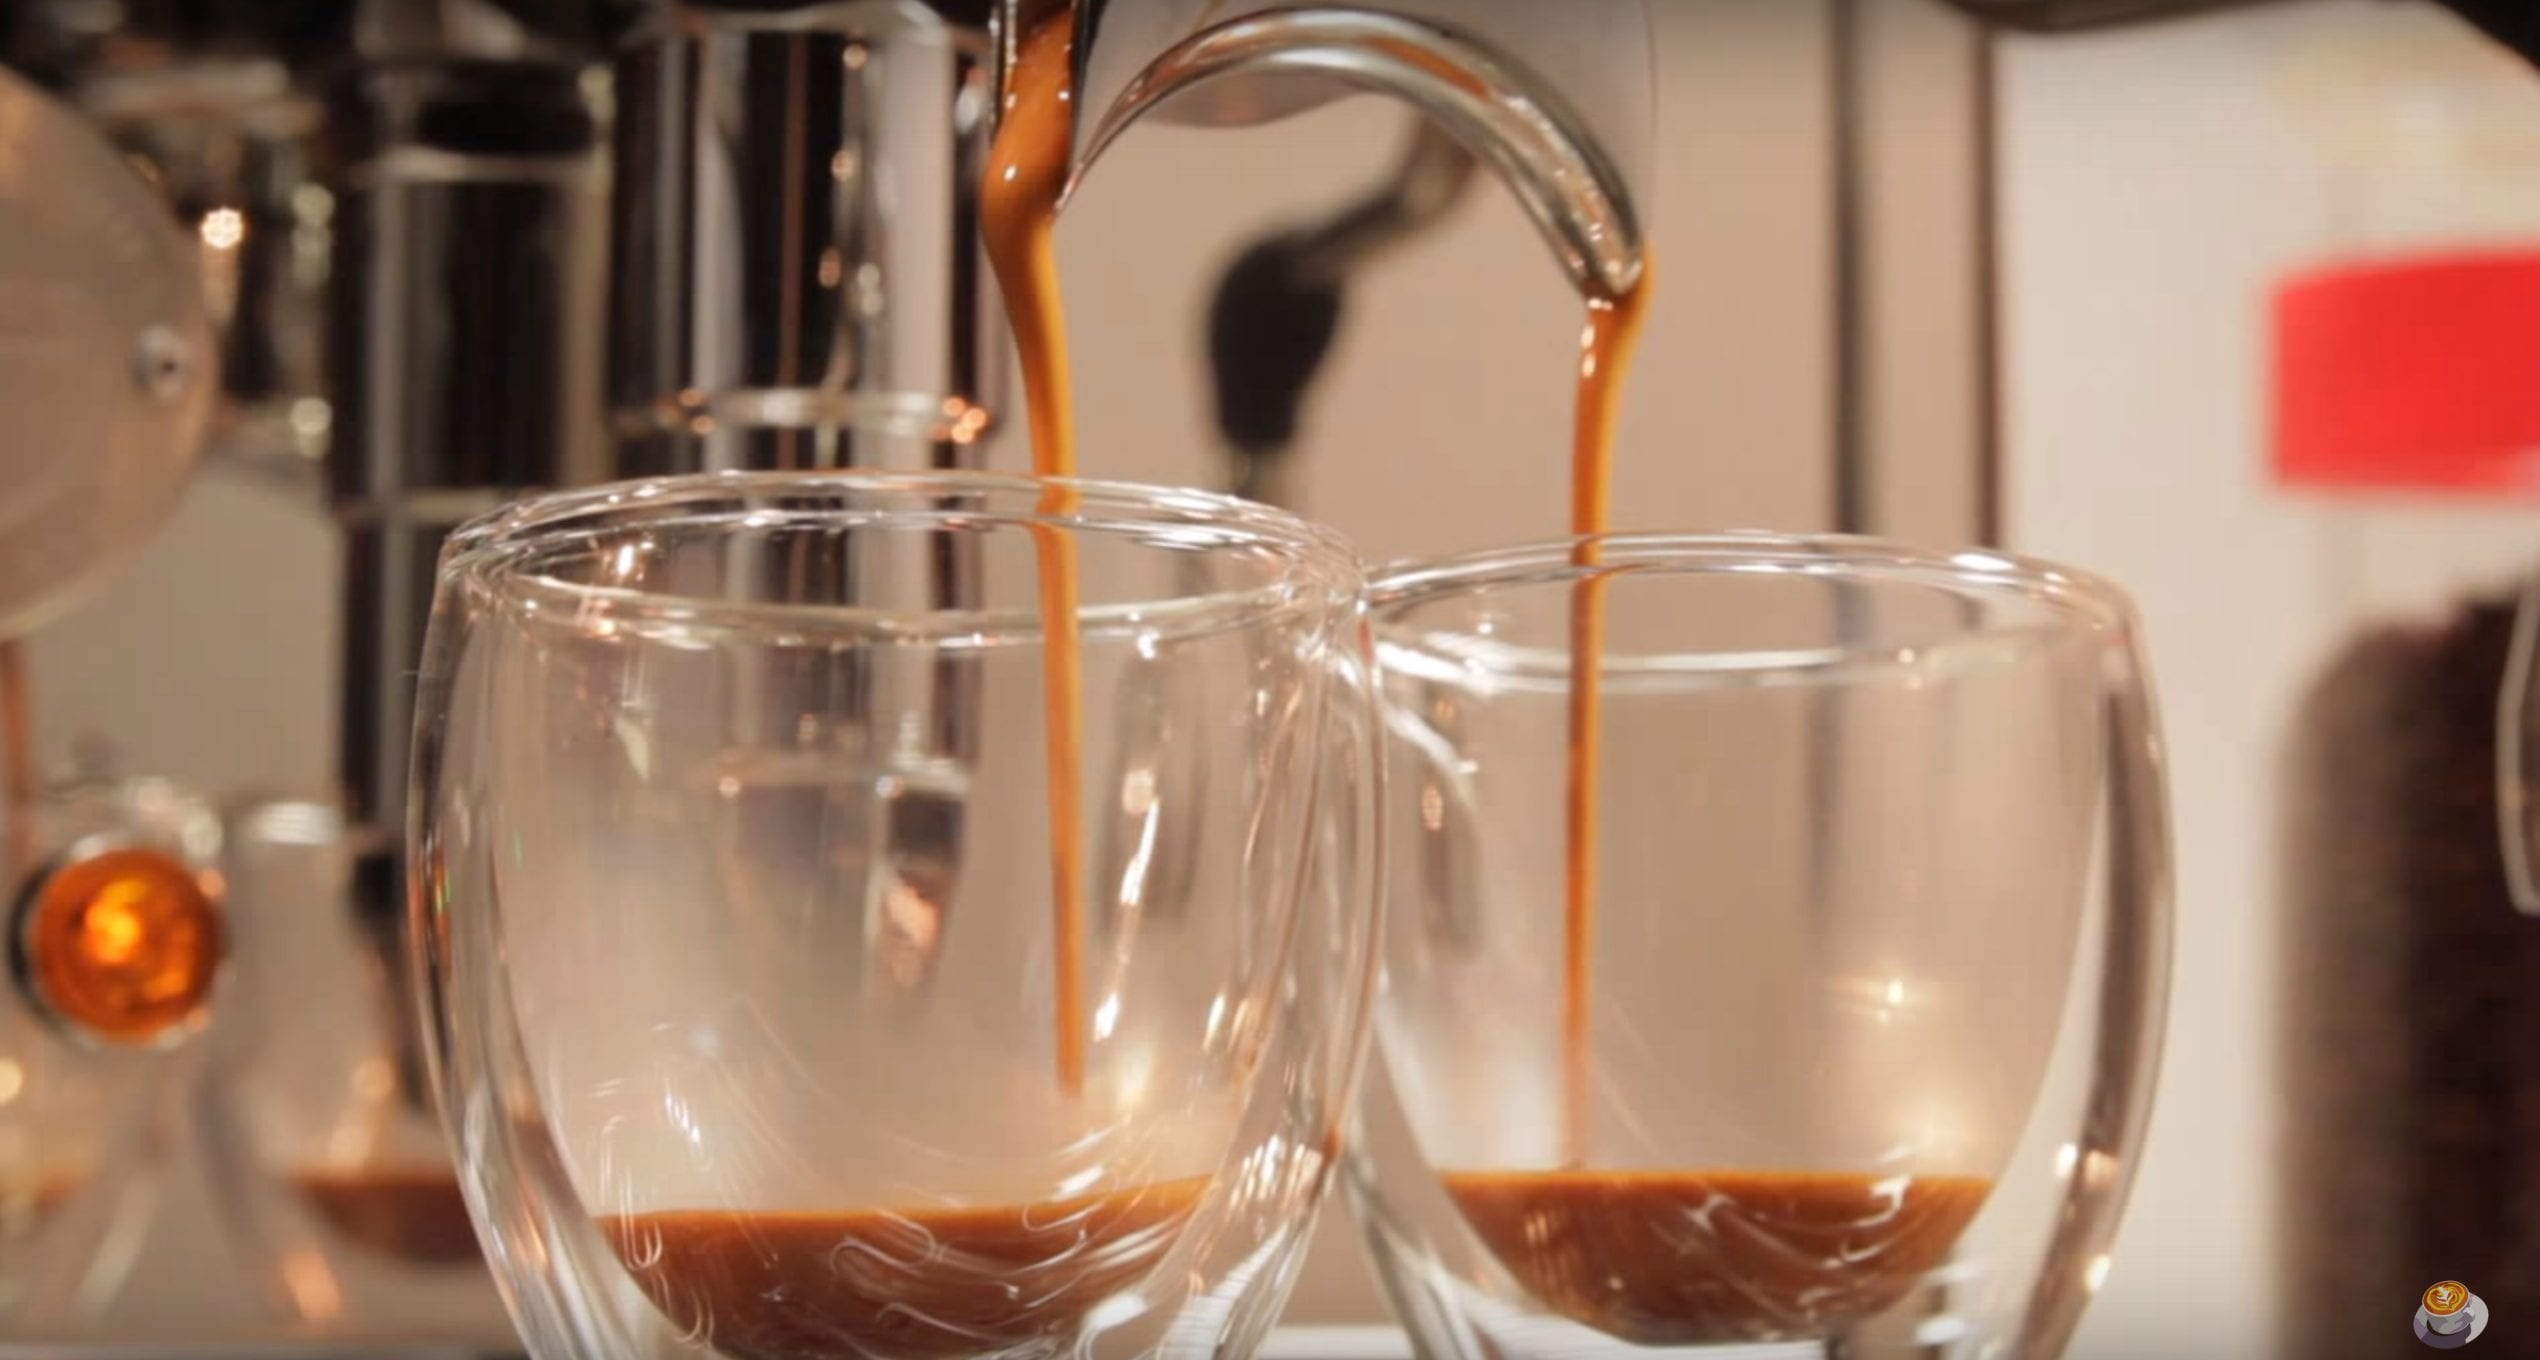 what is crema?